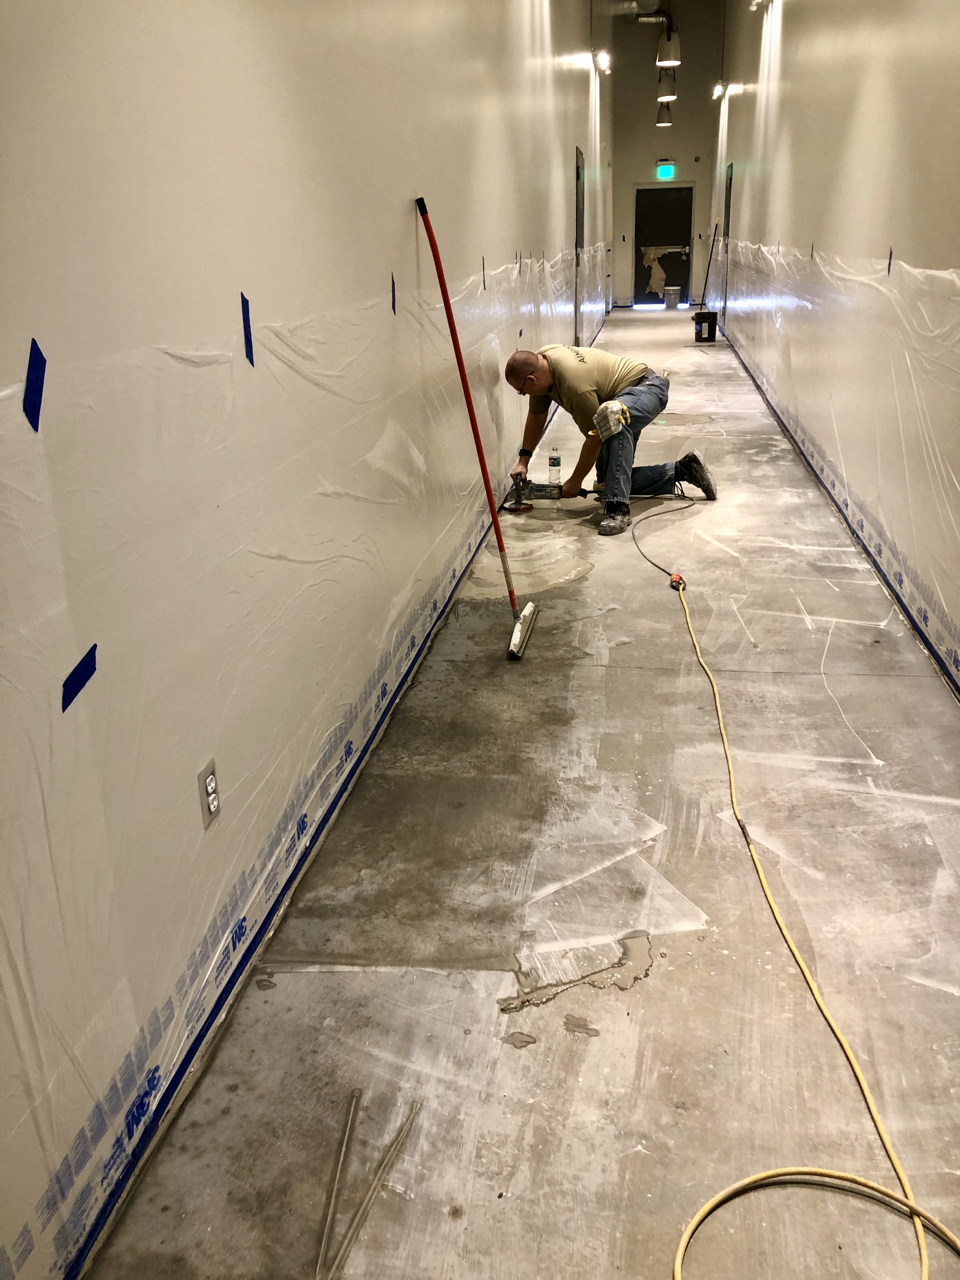 The concrete floors in the common areas of the studio were polished this week.